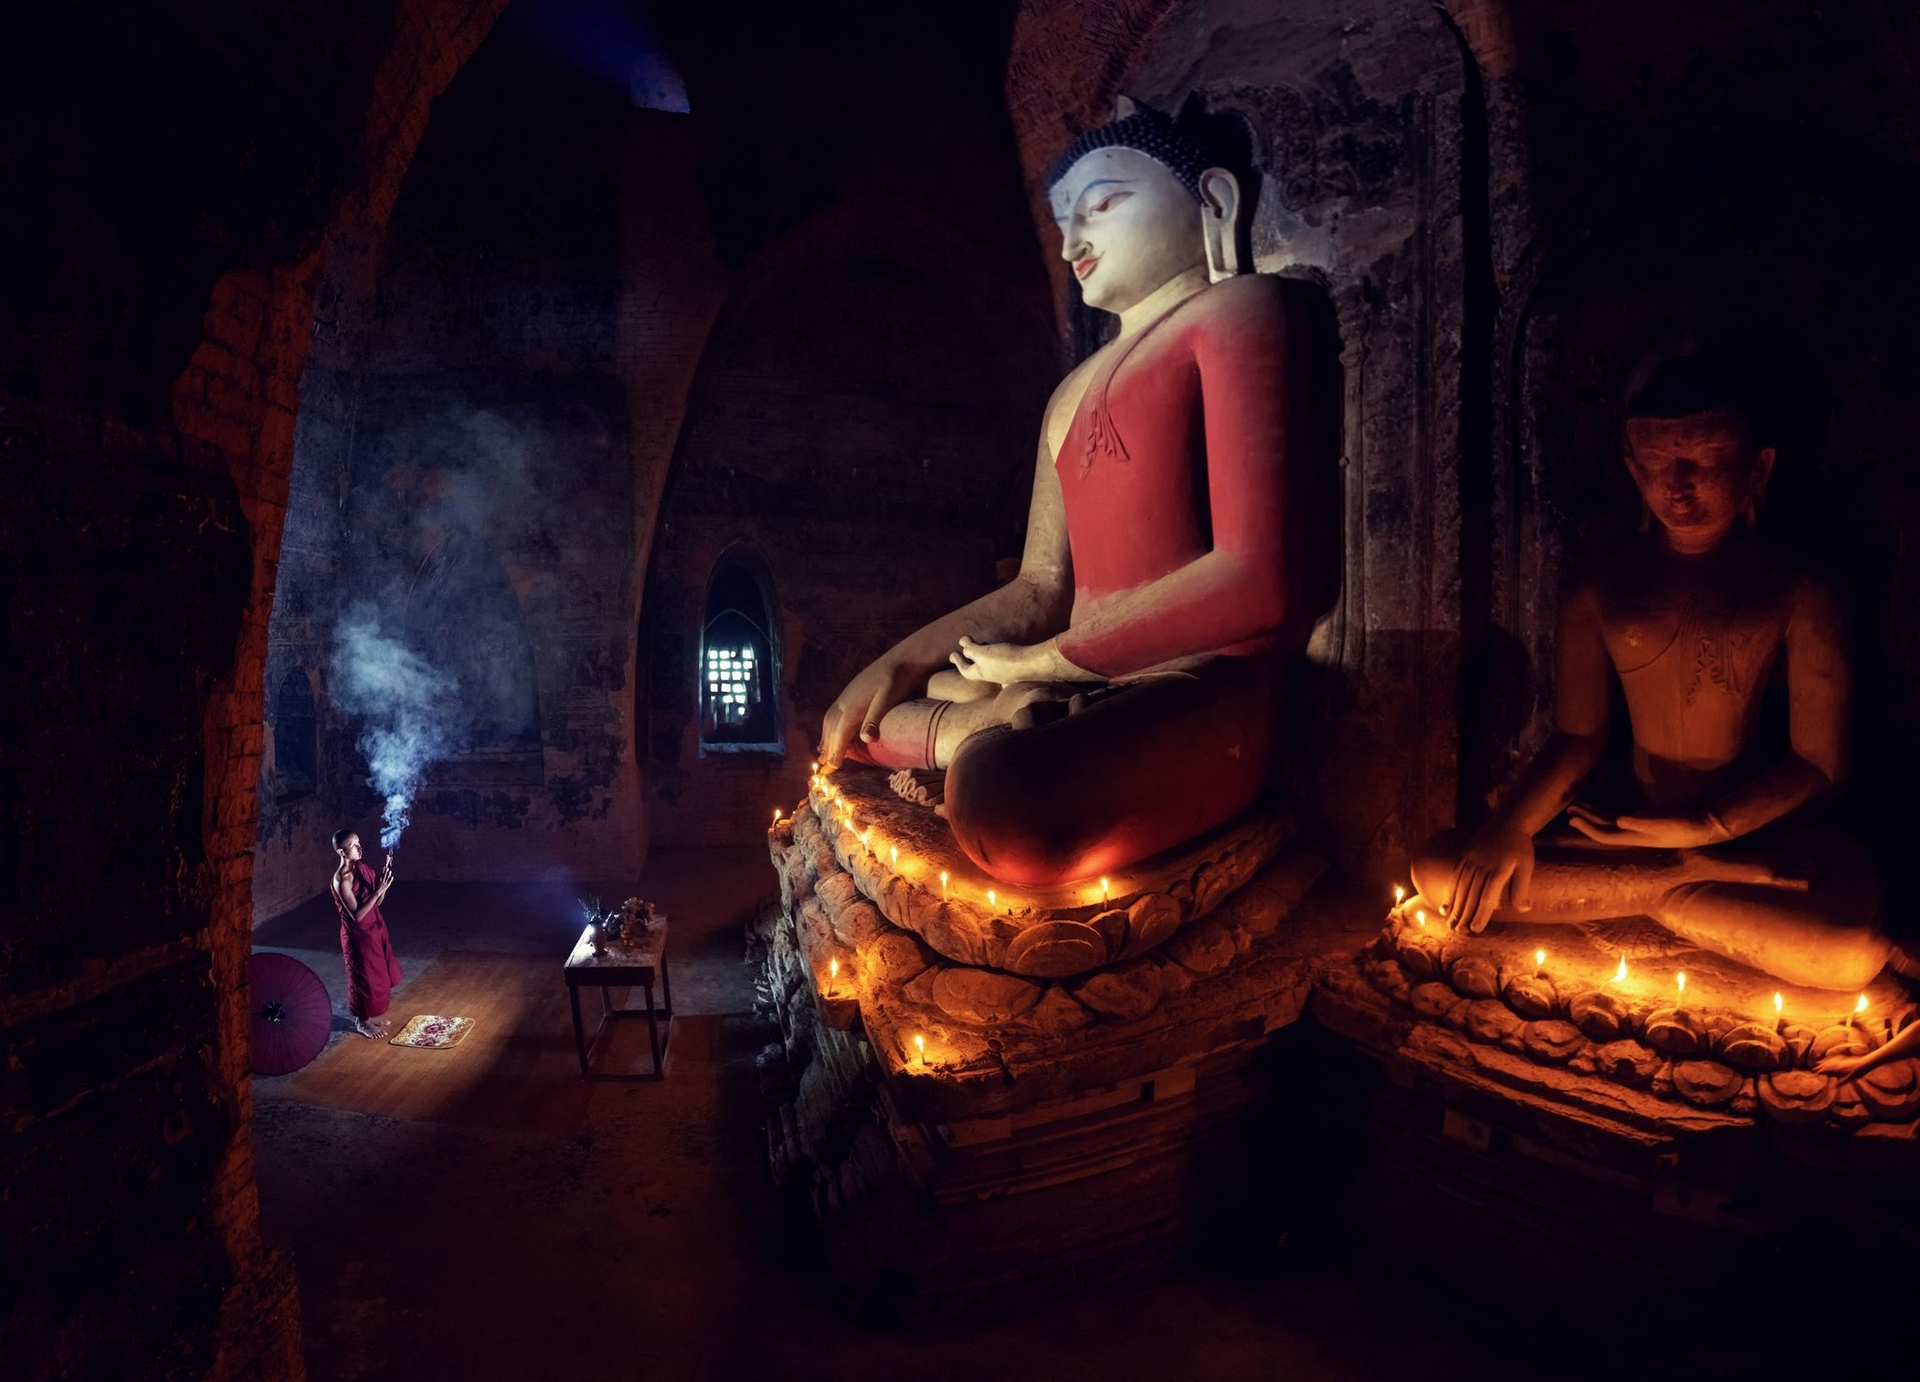 Photograph by Tuấn Nguyễn, National Geographic Your Shot